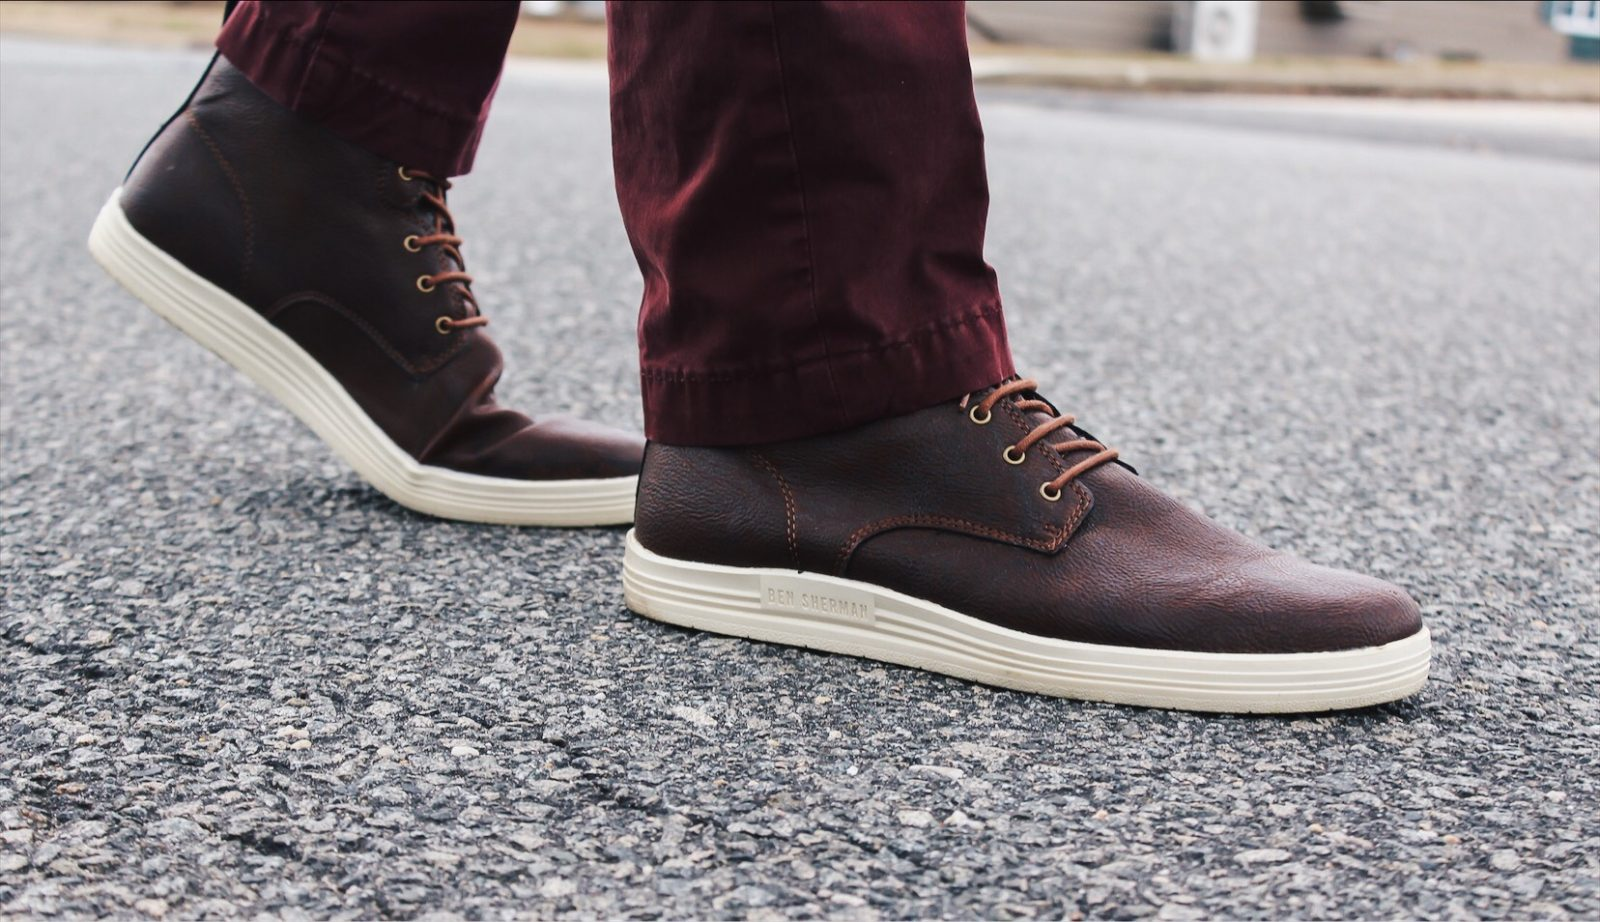 ben sherman brown leather shoes